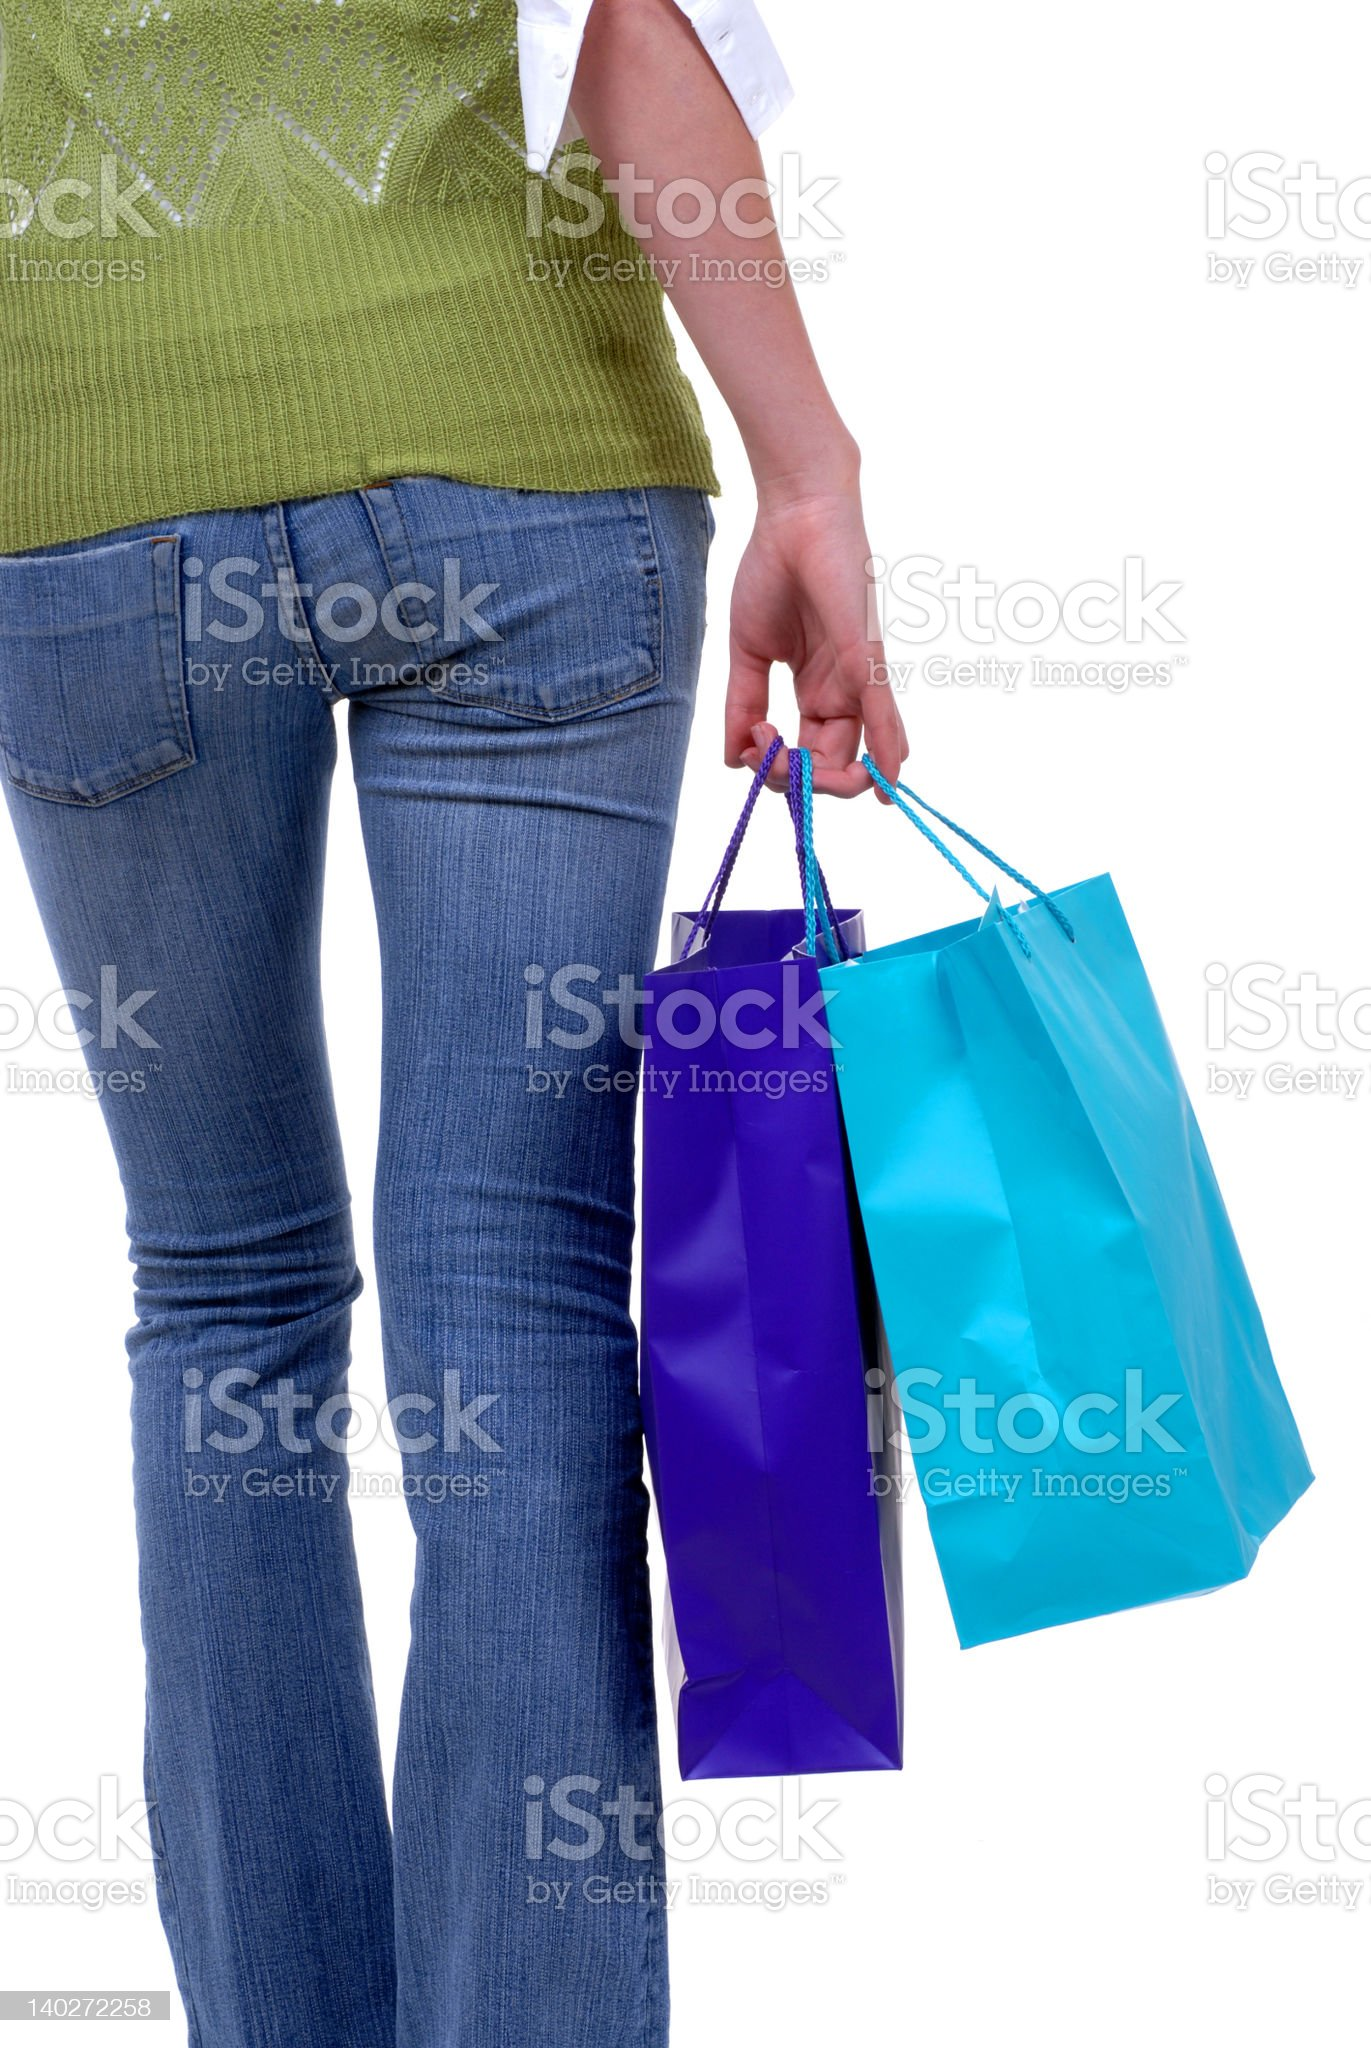 Heading for the Next Sale royalty-free stock photo